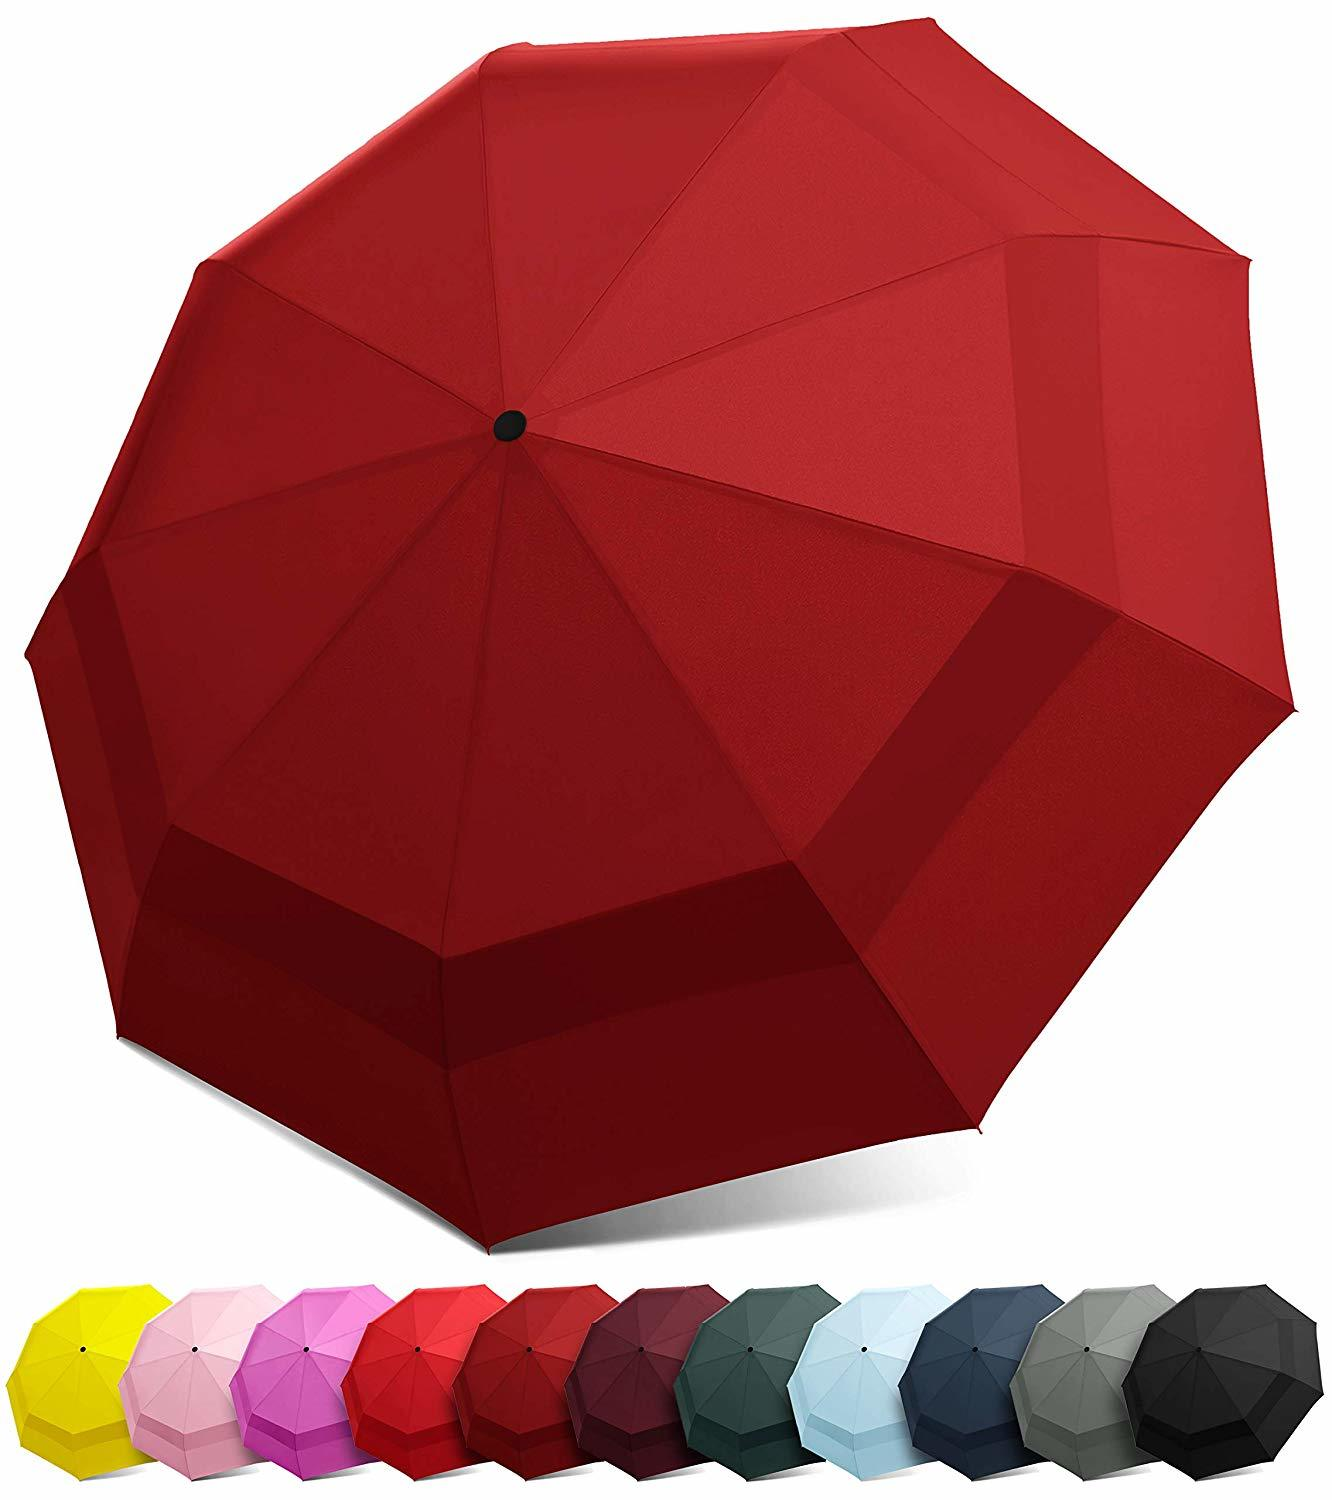 bc2214a73623 Best Compact Umbrella: Reviews and Buying Guide for 2019